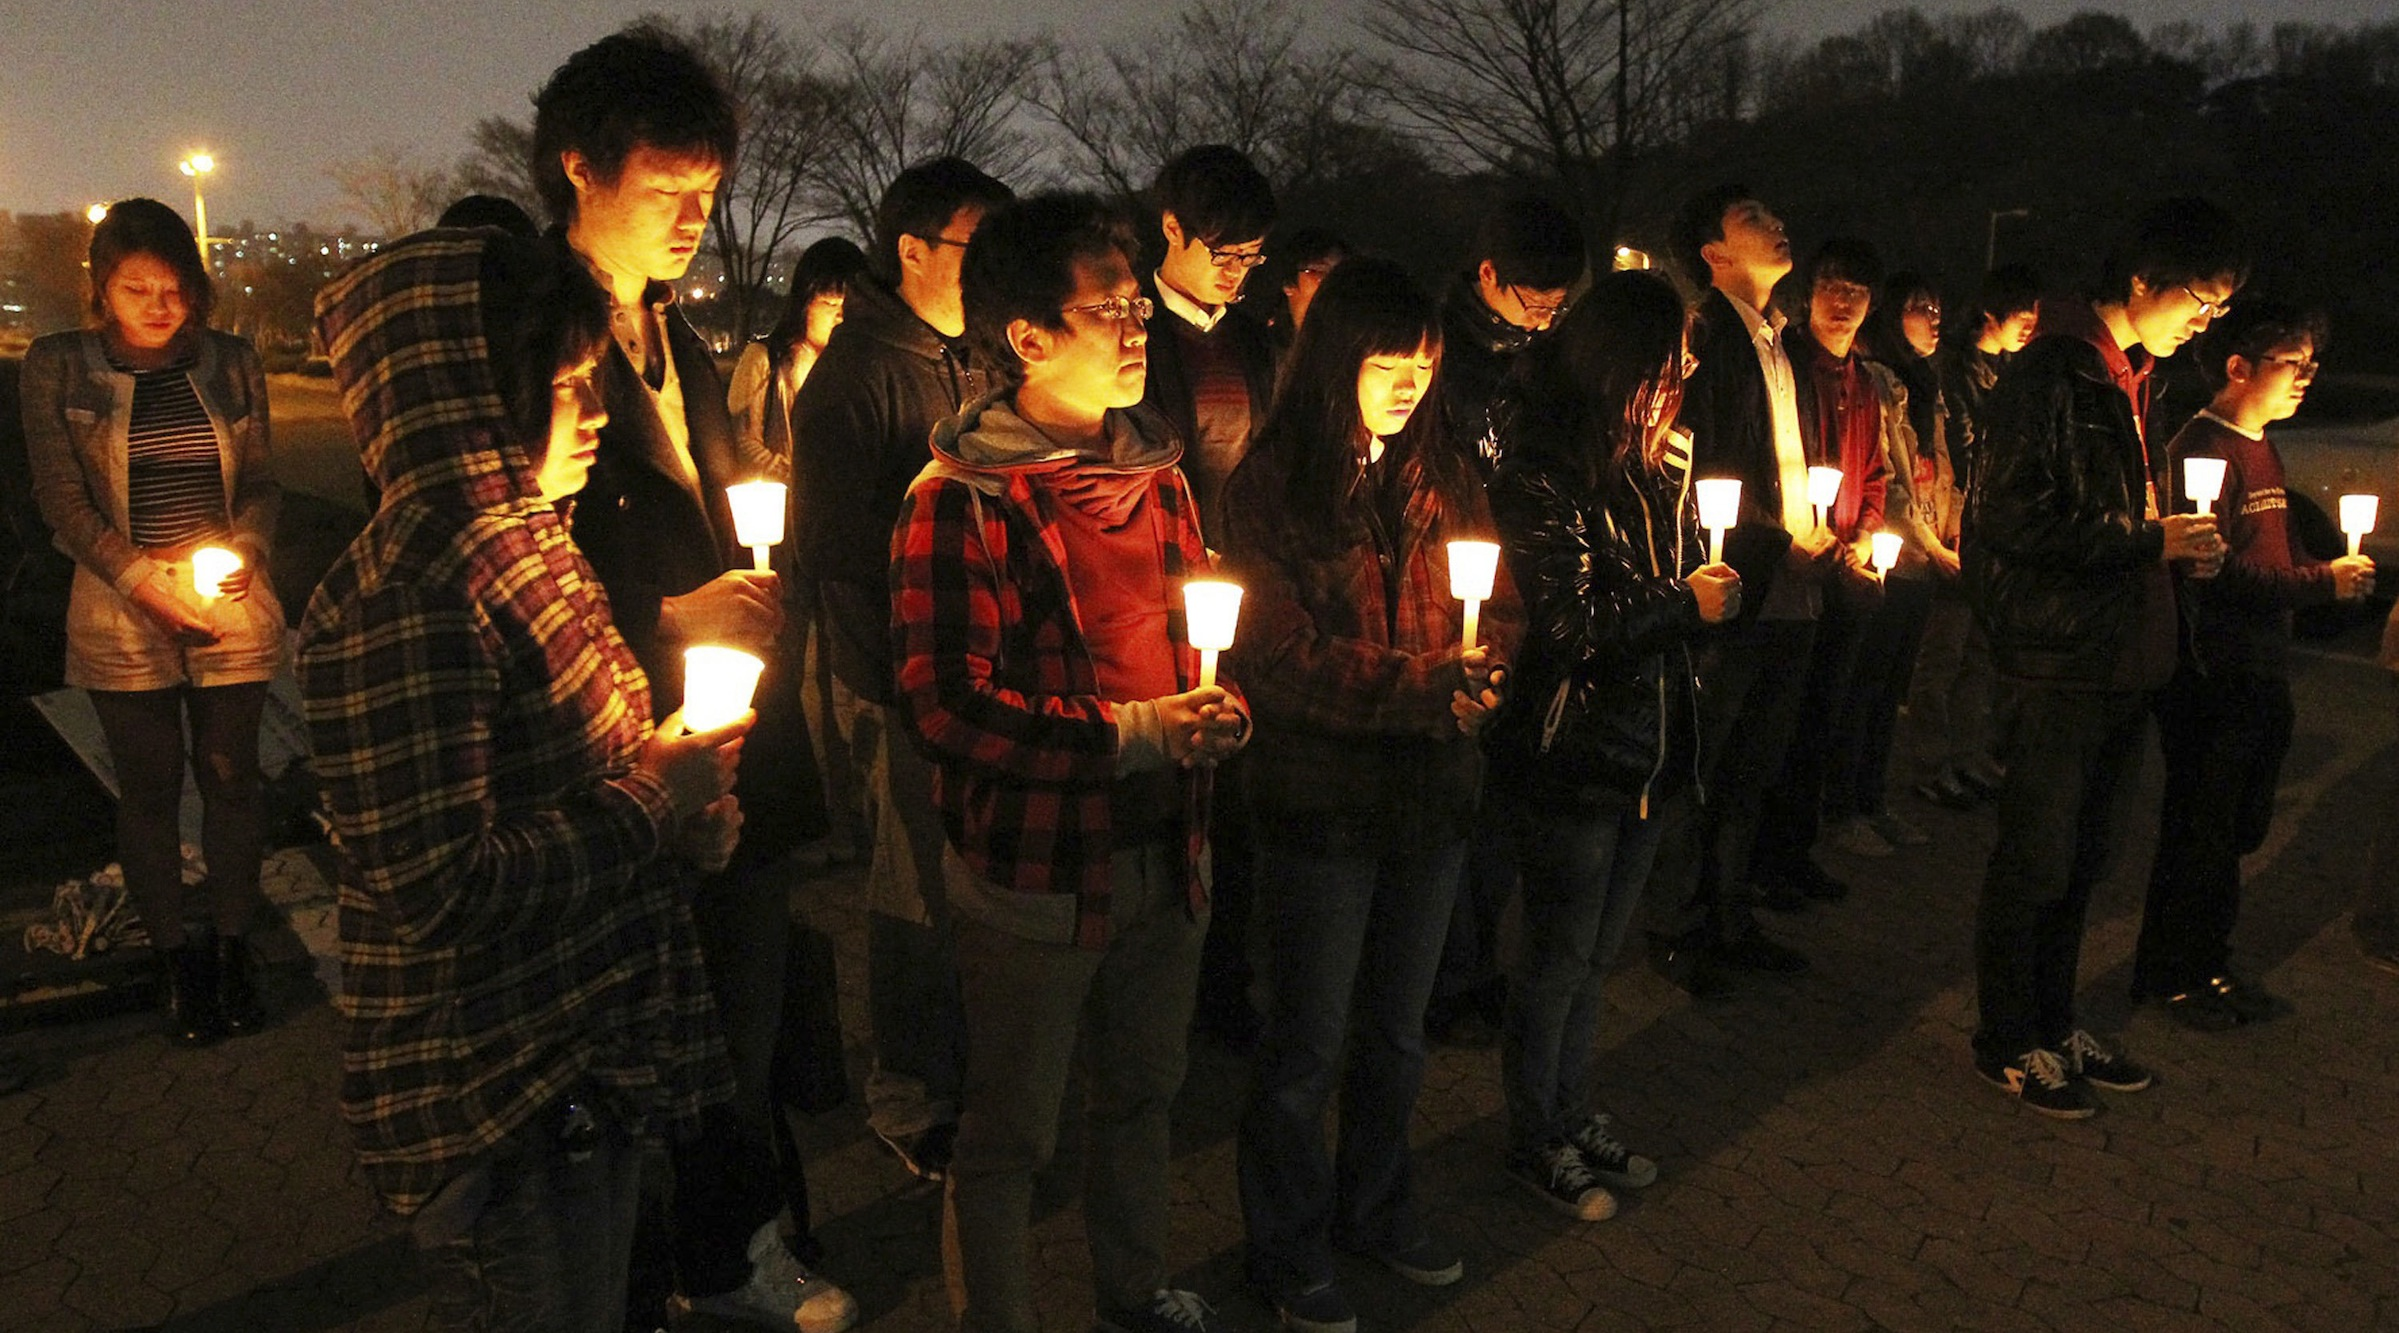 In this photo taken Sunday, April 10, 2011. Students of the Korea Advanced Institute of Science and Technology light candles to mourn for their fellow students committed suicide at their campus in Daejeon, South Korea. (AP Photo/Yonhap)   KOREA OUT